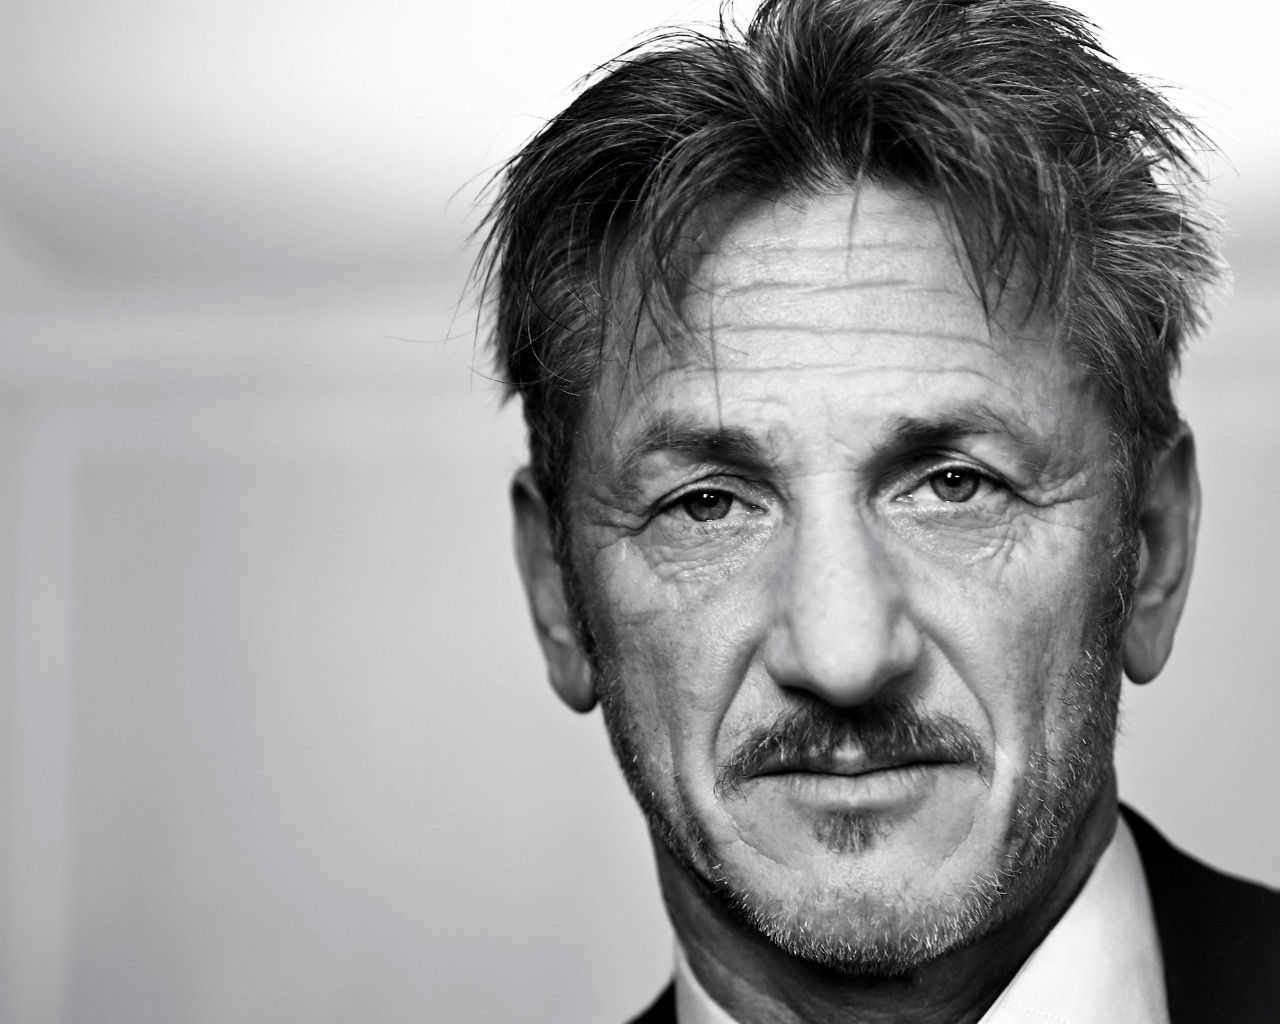 Sean Penn Portrait in Black & White Wallpaper for Desktop 1280x1024